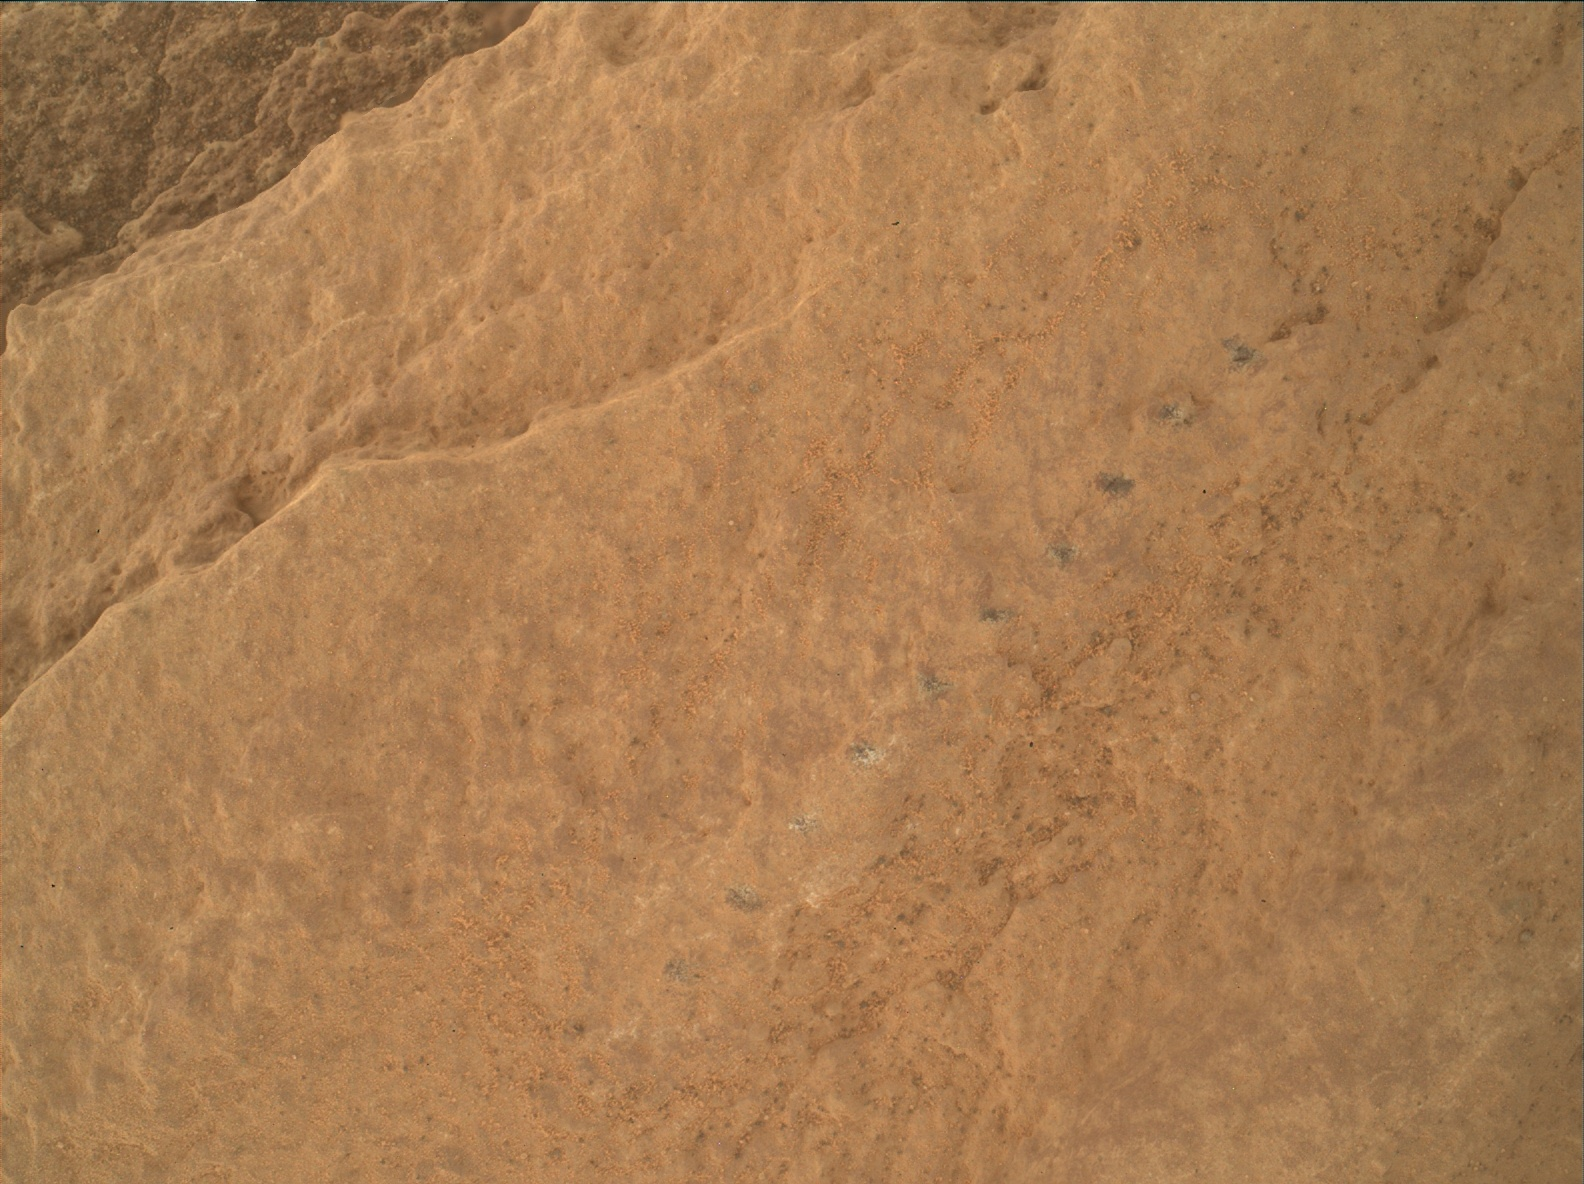 Nasa's Mars rover Curiosity acquired this image using its Mars Hand Lens Imager (MAHLI) on Sol 2579